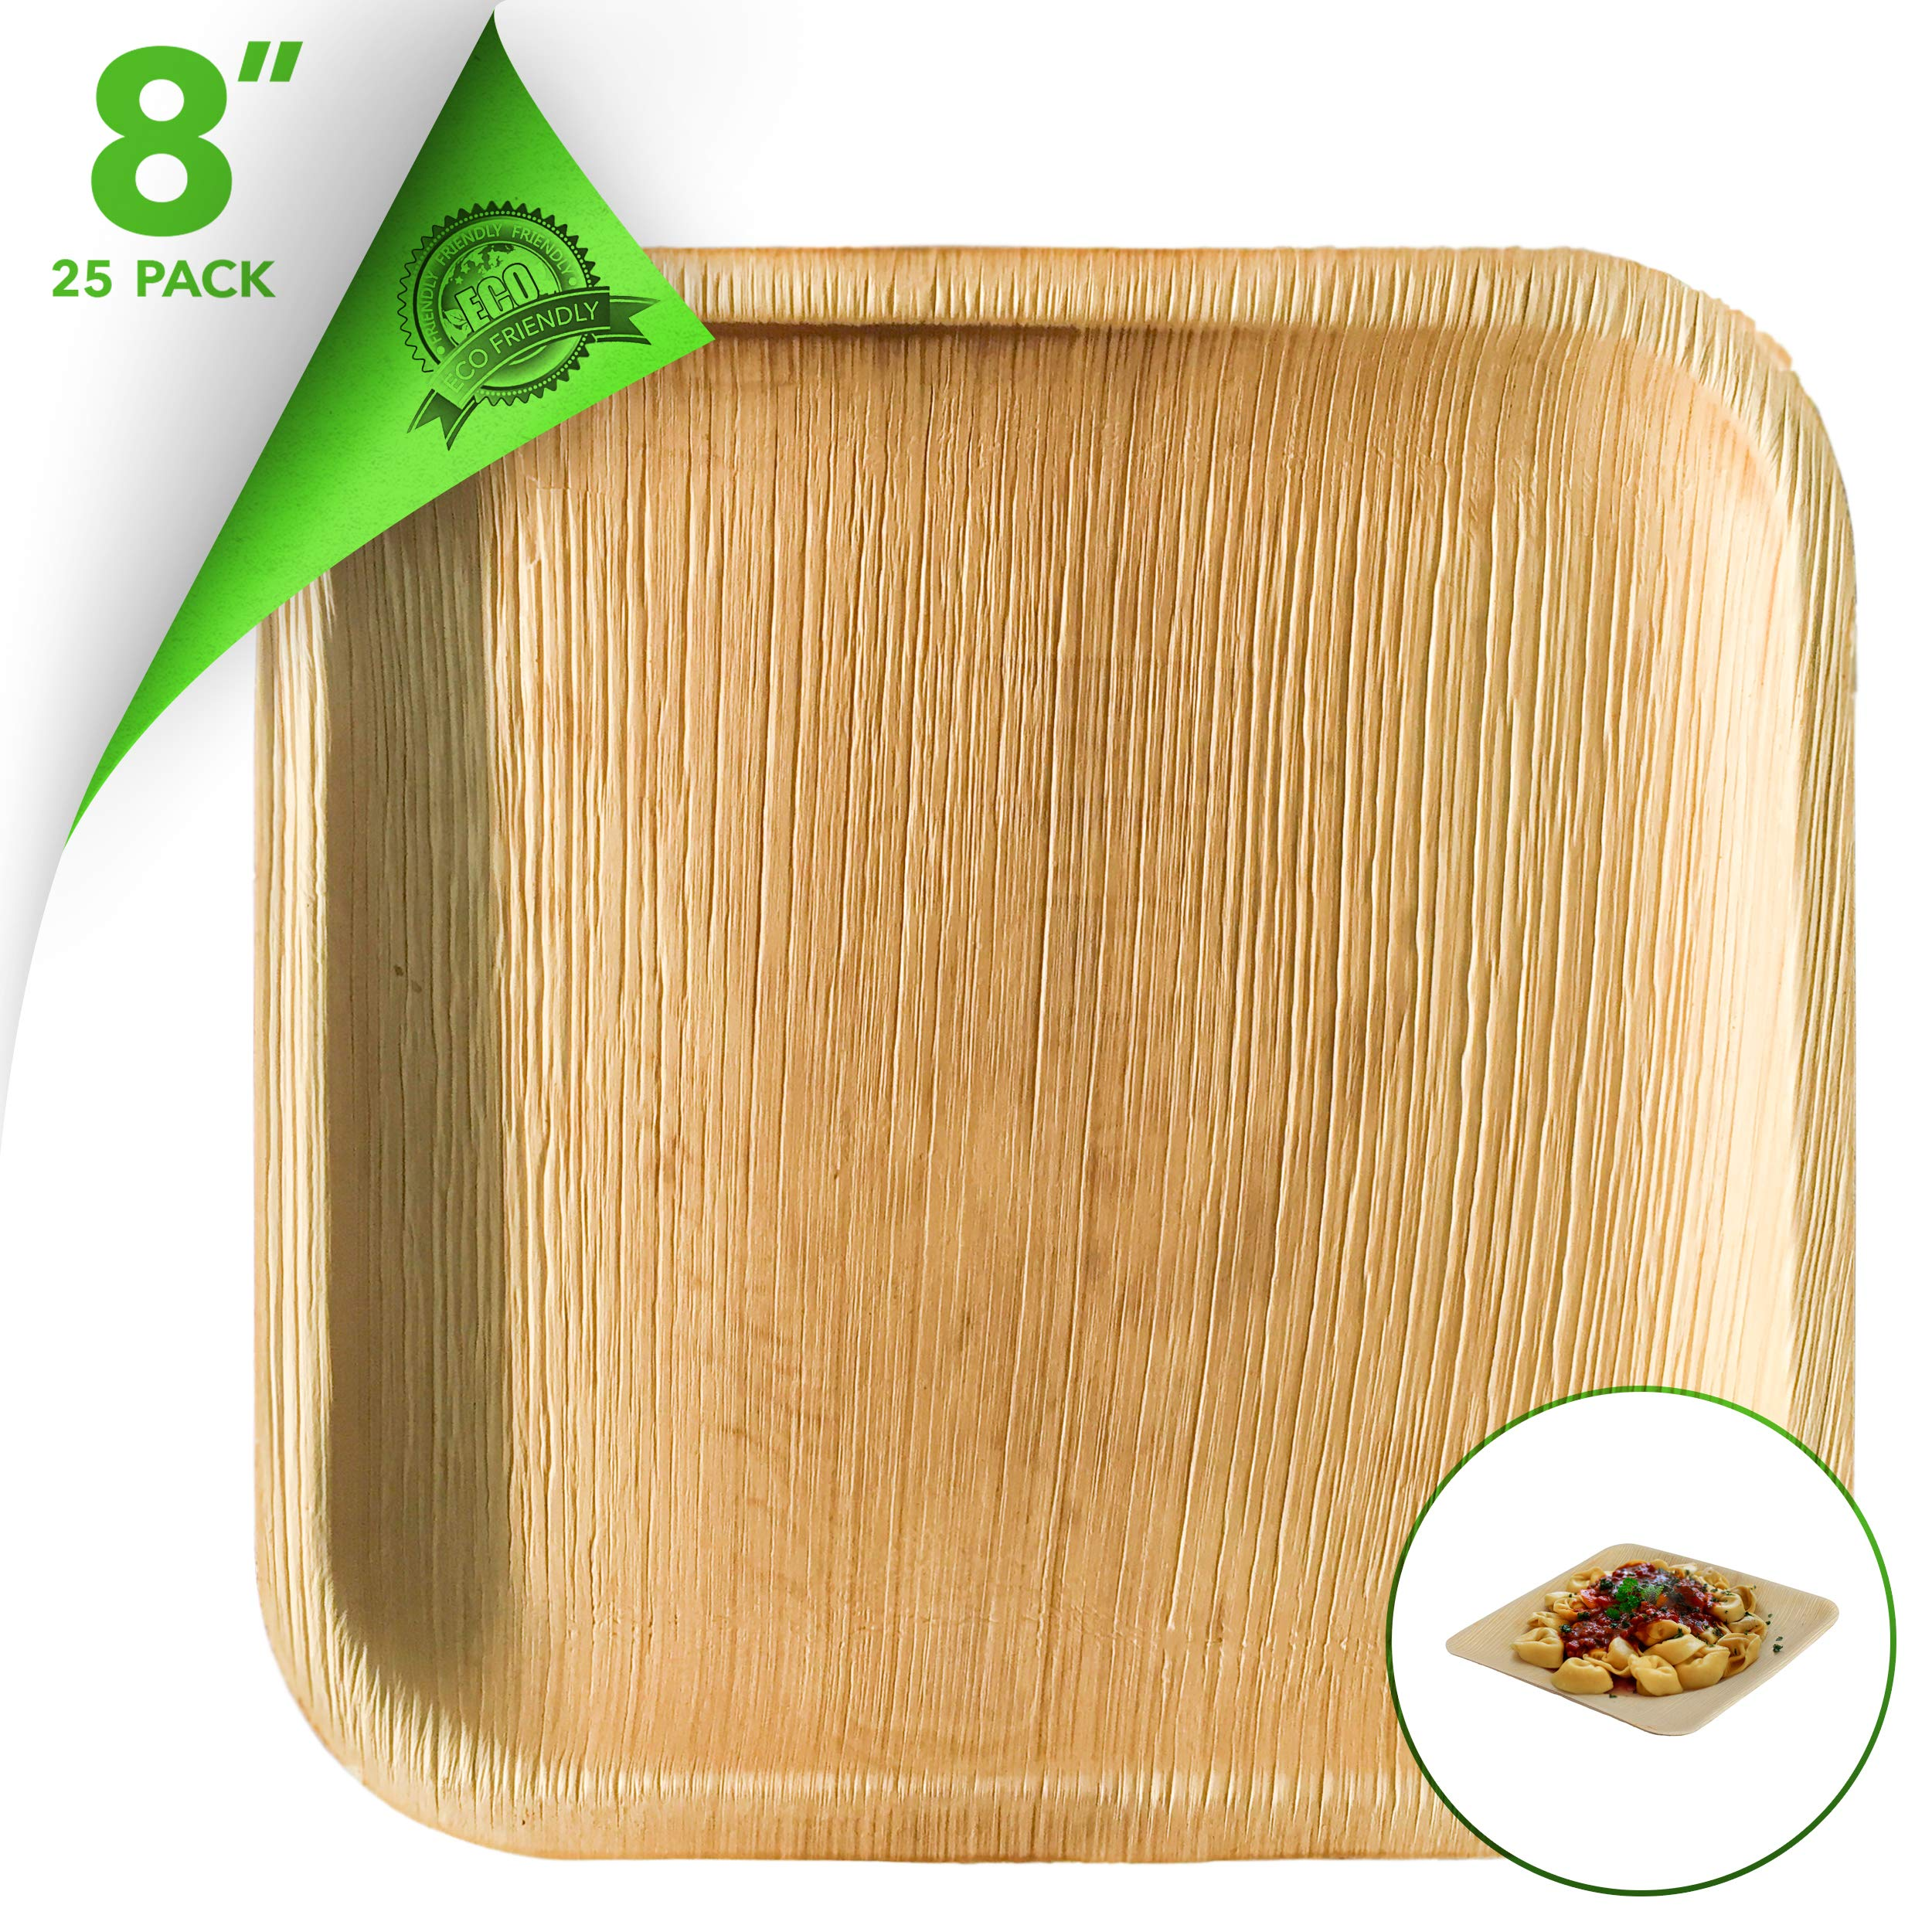 Disposable Wooden Plate 8 Inch Eco Plates (25 Pack) Palm Leaf Recycled Plates - Heavy Duty Disposable Plates Bamboo Like Disposable Dishes for Weddings, Parties, Dinners and Everyday Use…